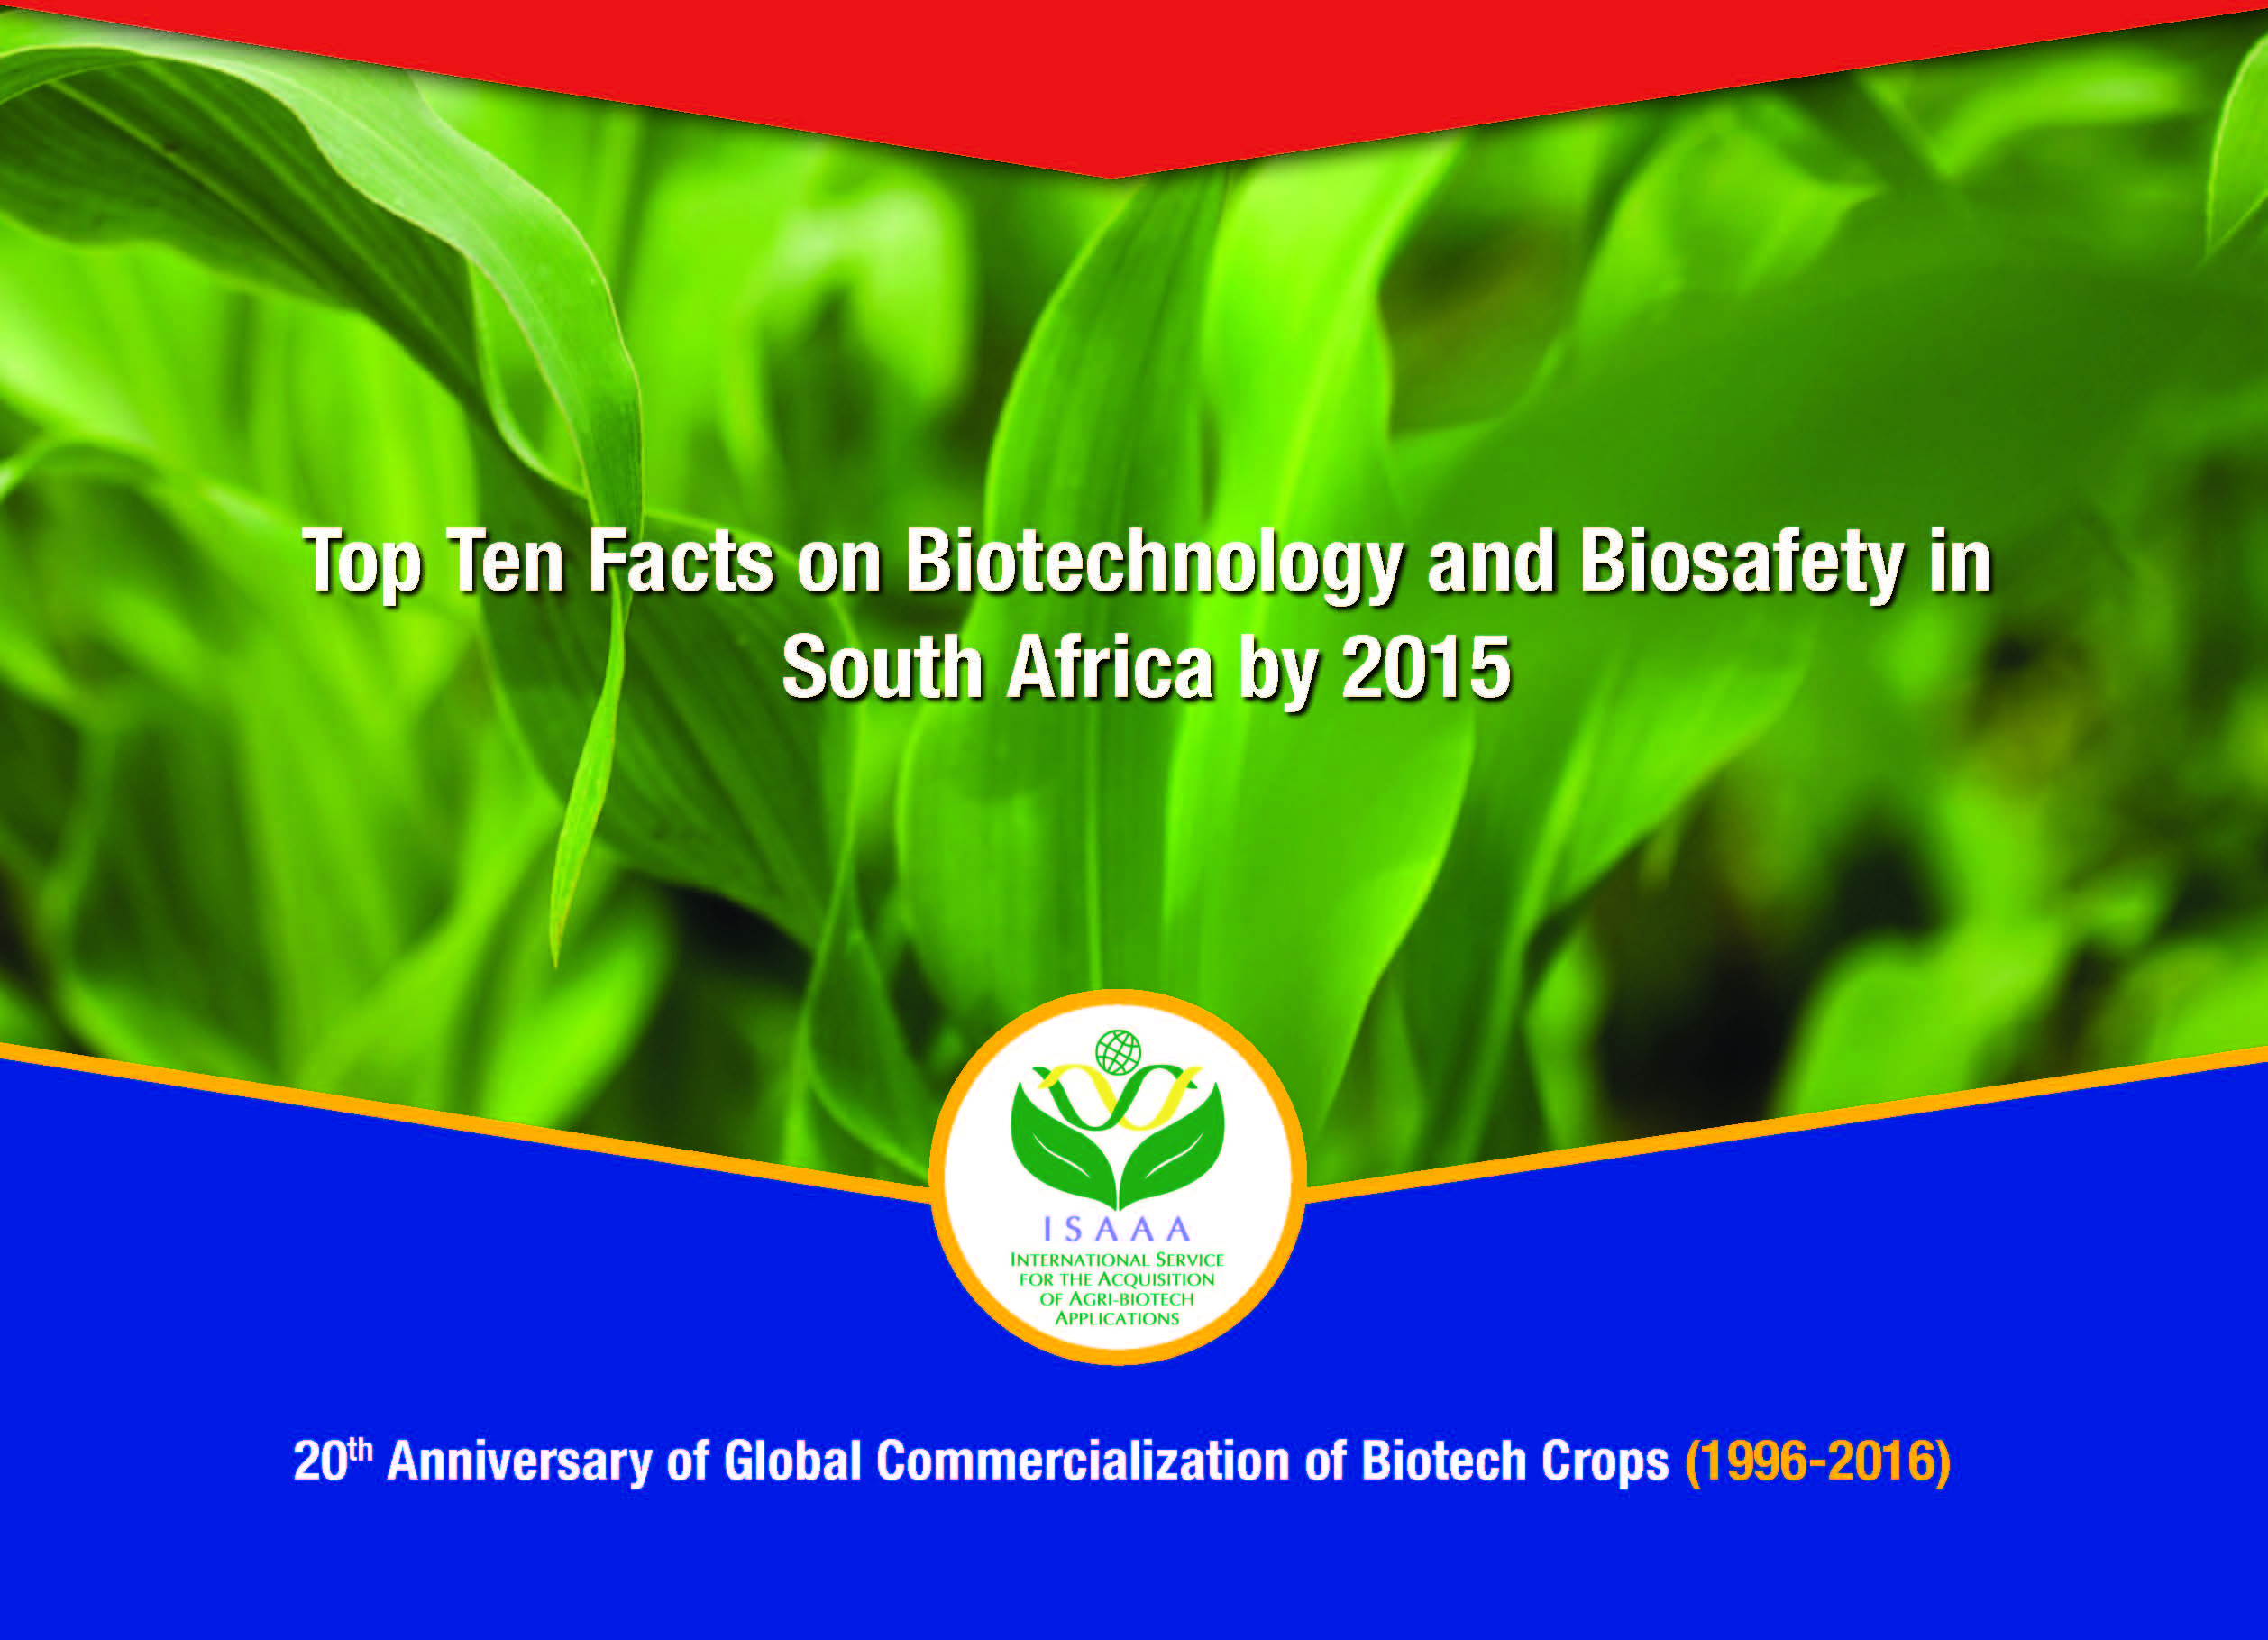 Top Ten Facts on Biotechnology and Biosafety in South Africa by 2015